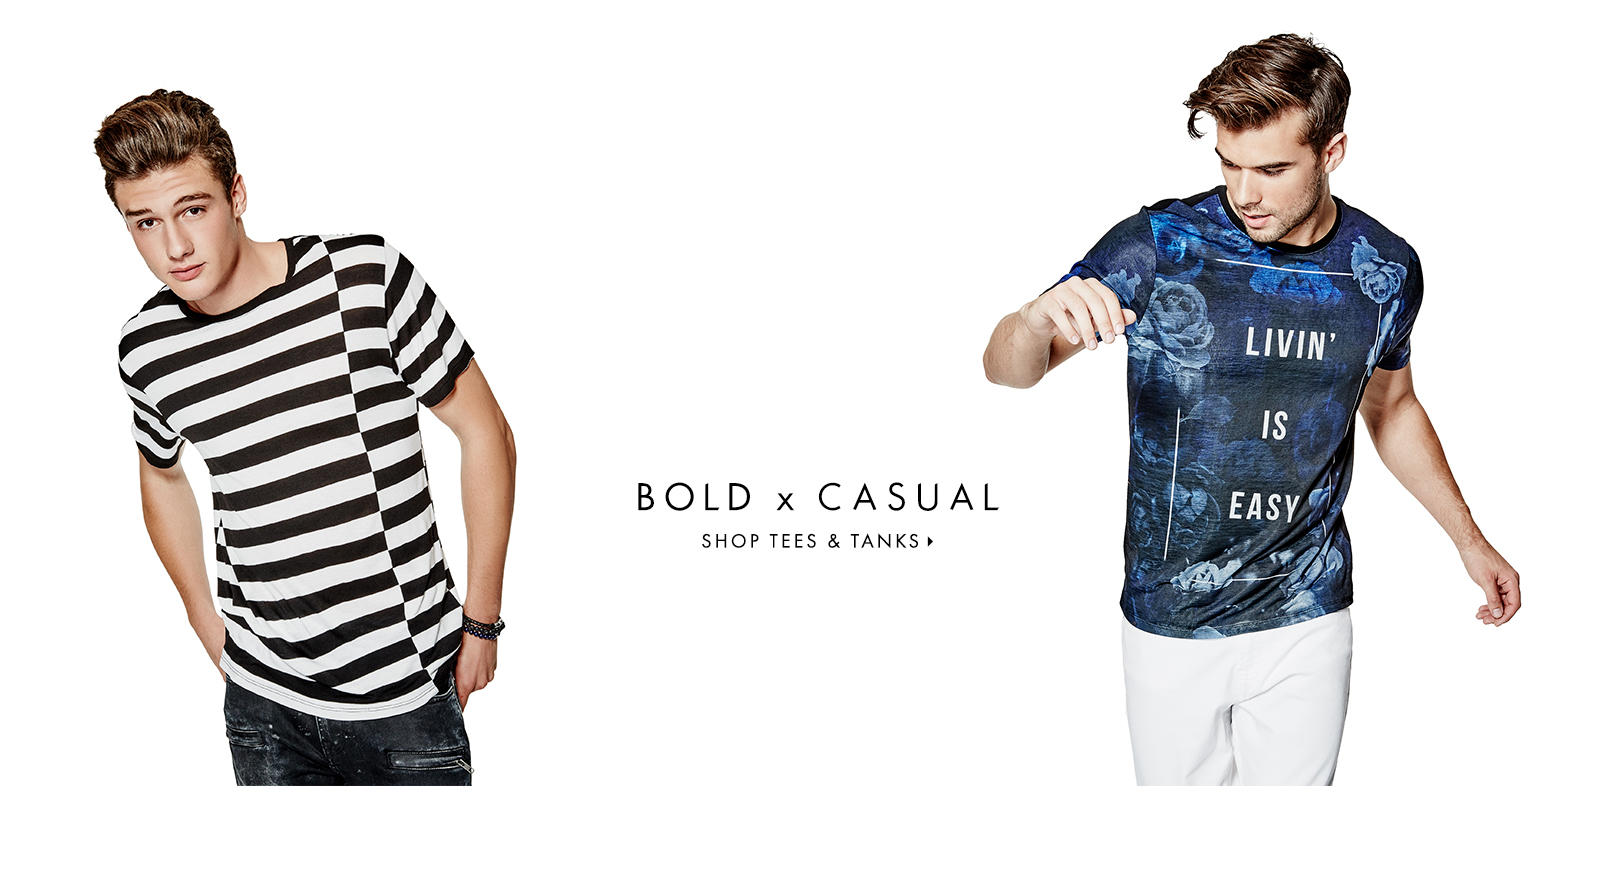 BOLD X CASUAL